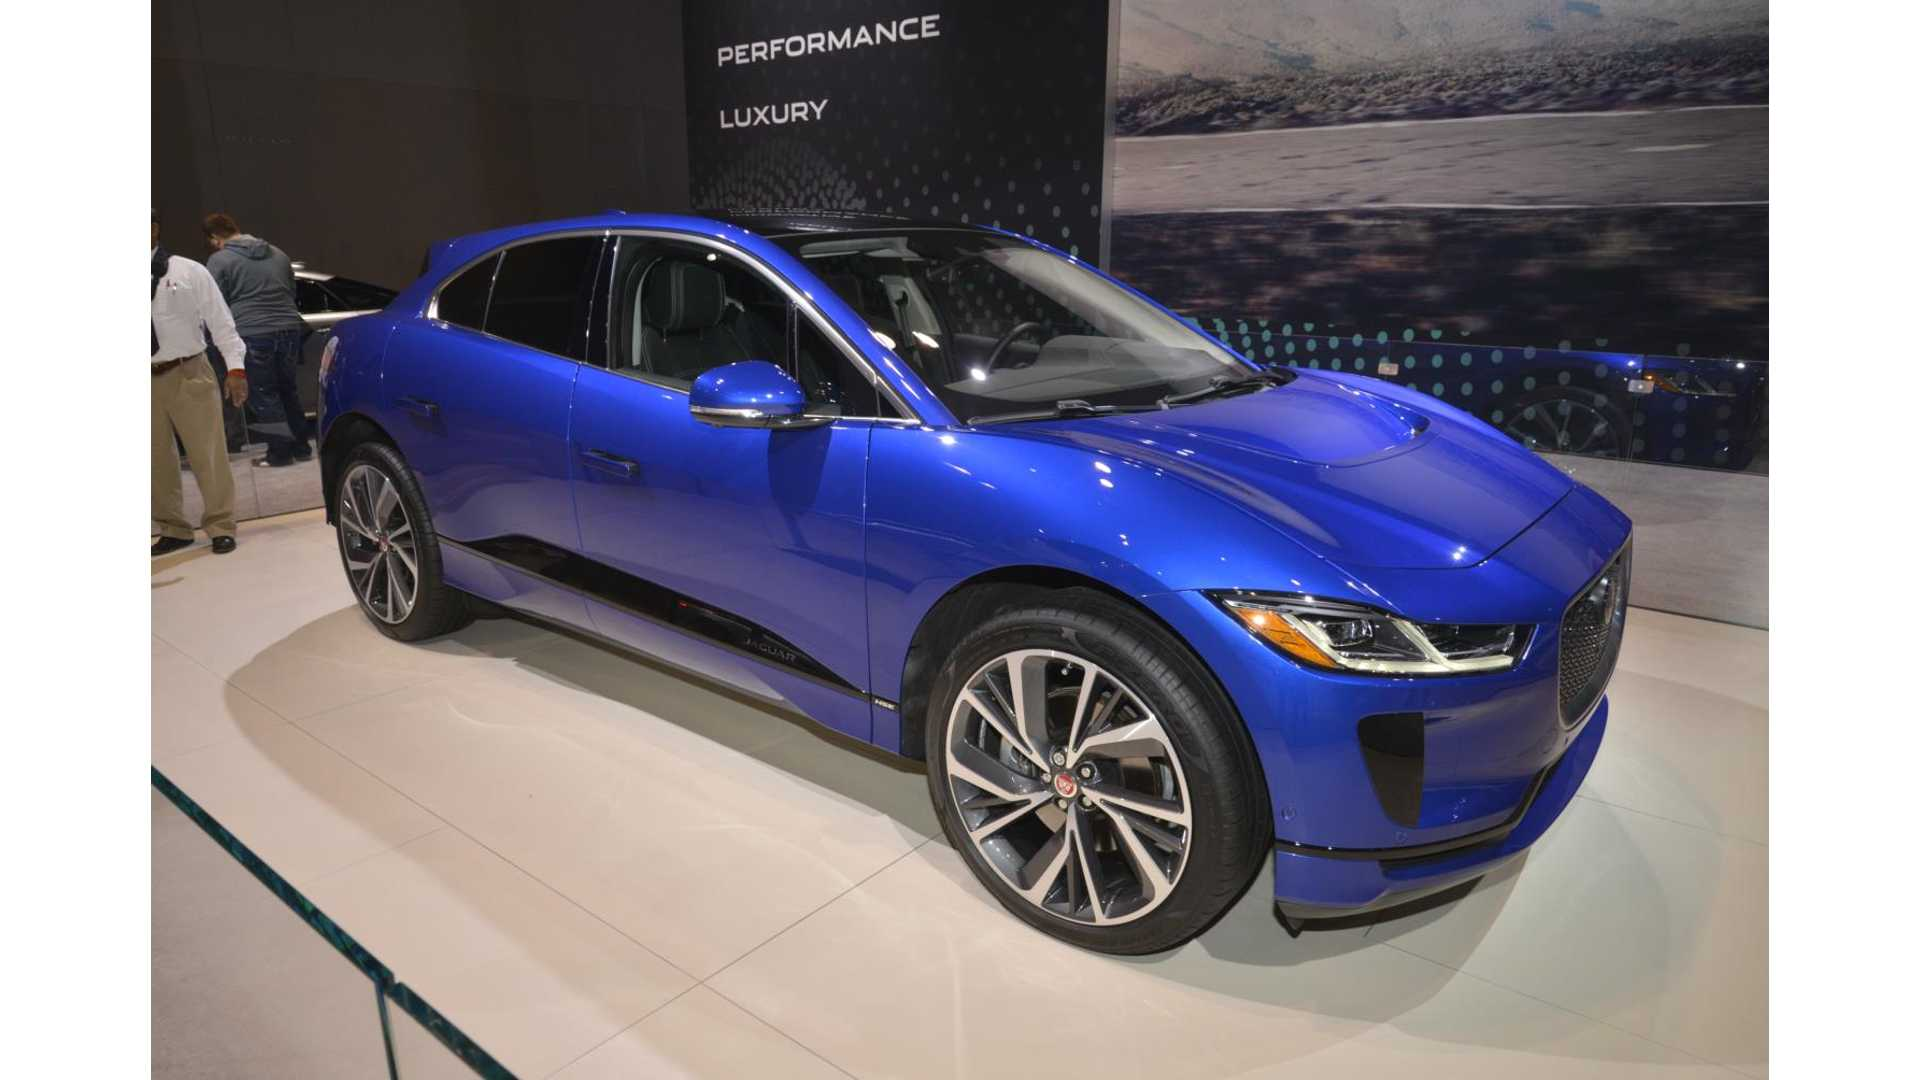 Jaguar Offers 0 Apr On I Pace How Does It Compare To Tesla